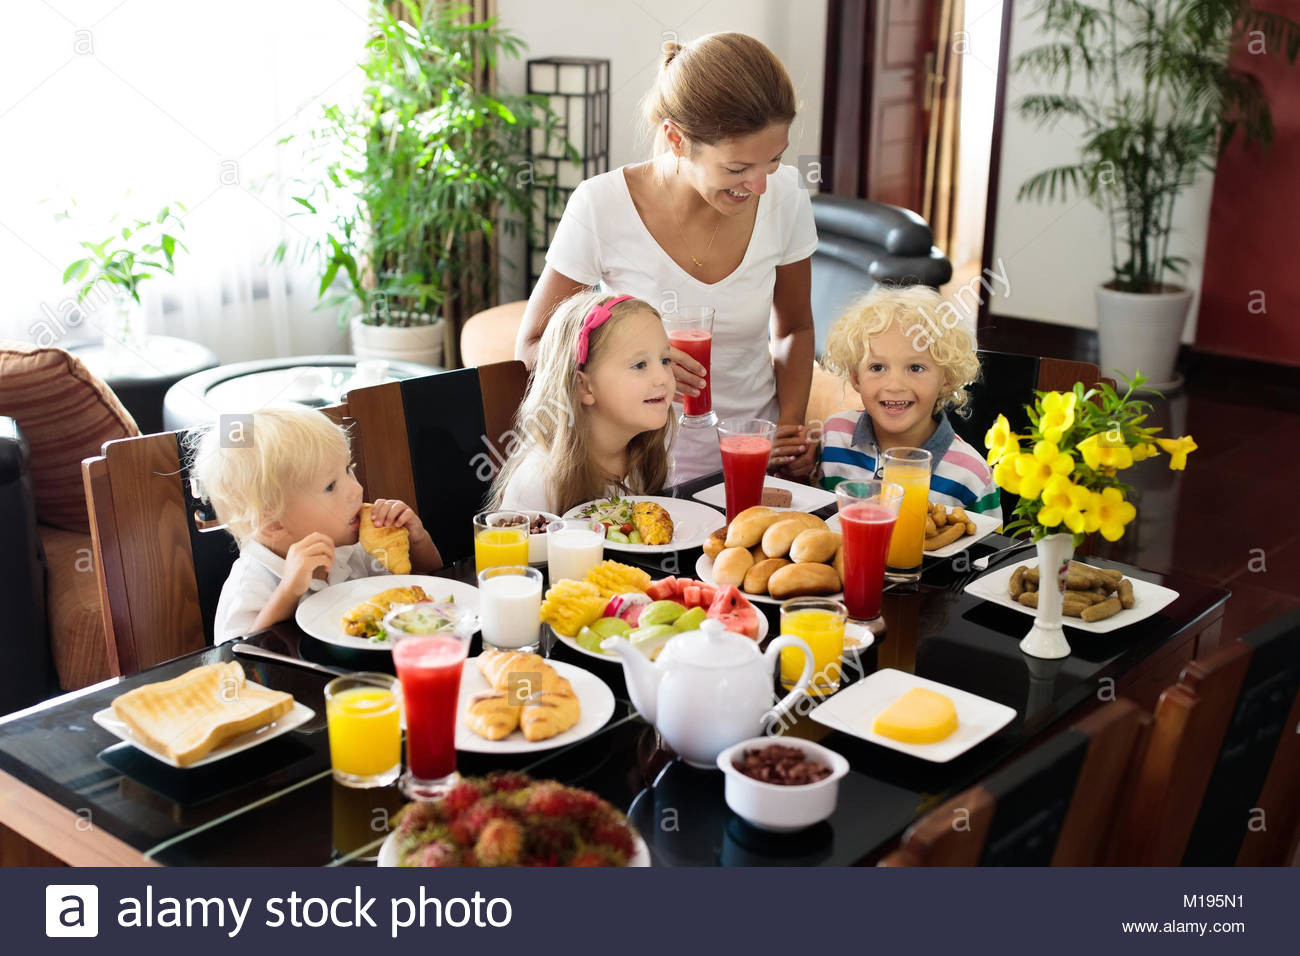 Healthy Breakfast At Home  Healthy family breakfast at home Mother and kids eating